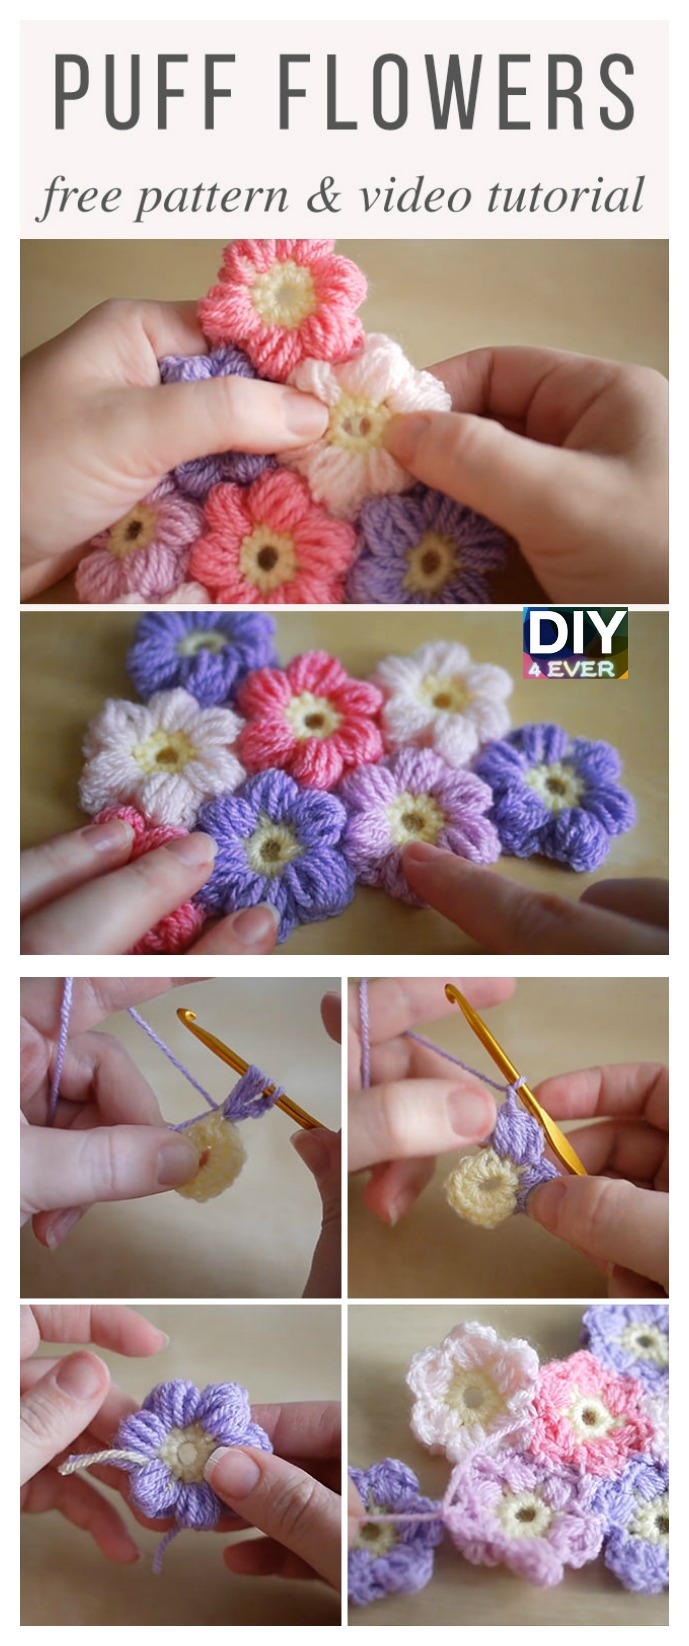 Crochet Puff Flowers - Free Pattern & Video Tutorial